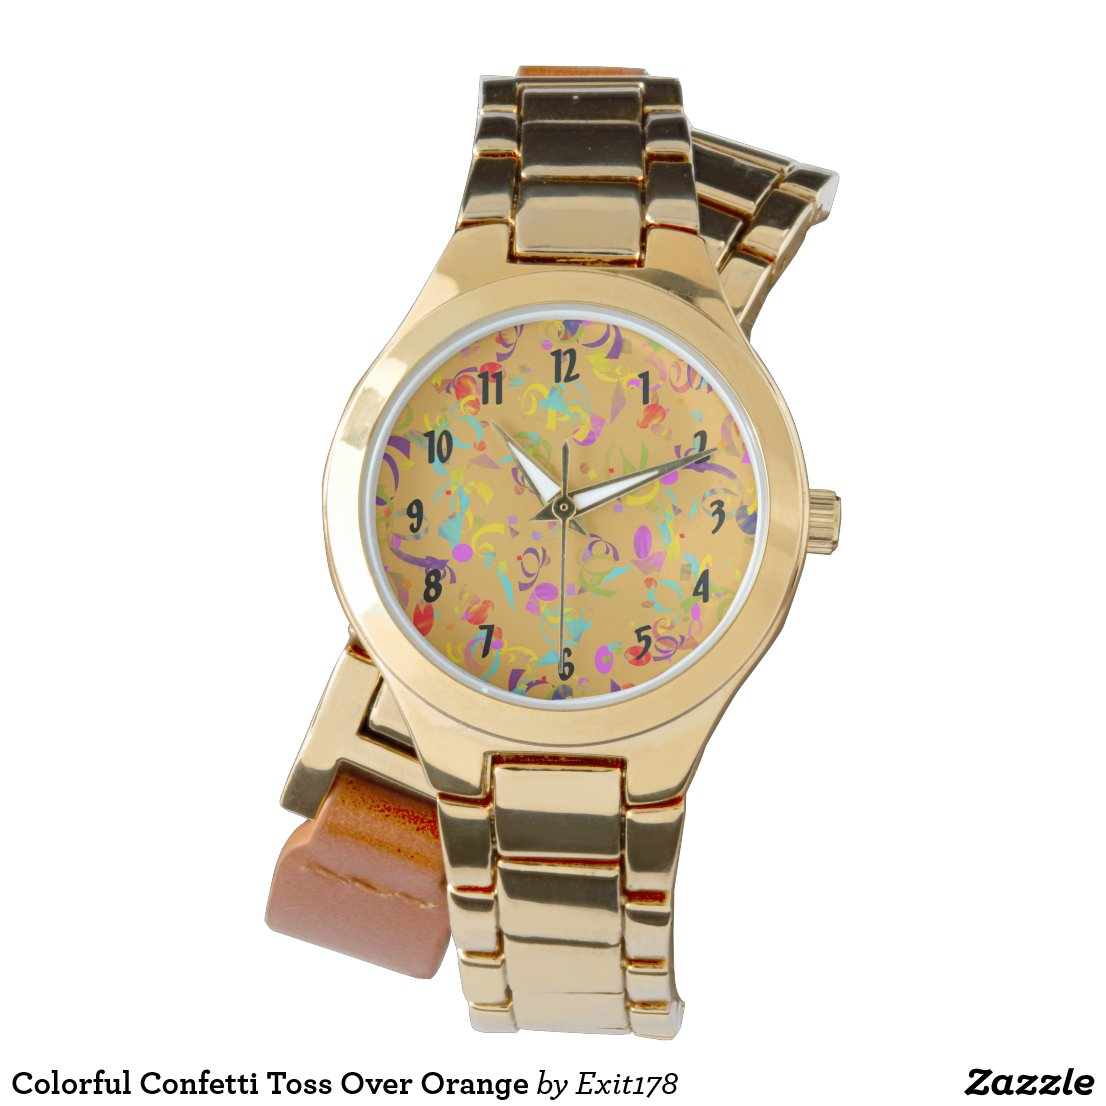 Colorful Confetti Toss Over Orange Wrist Watch